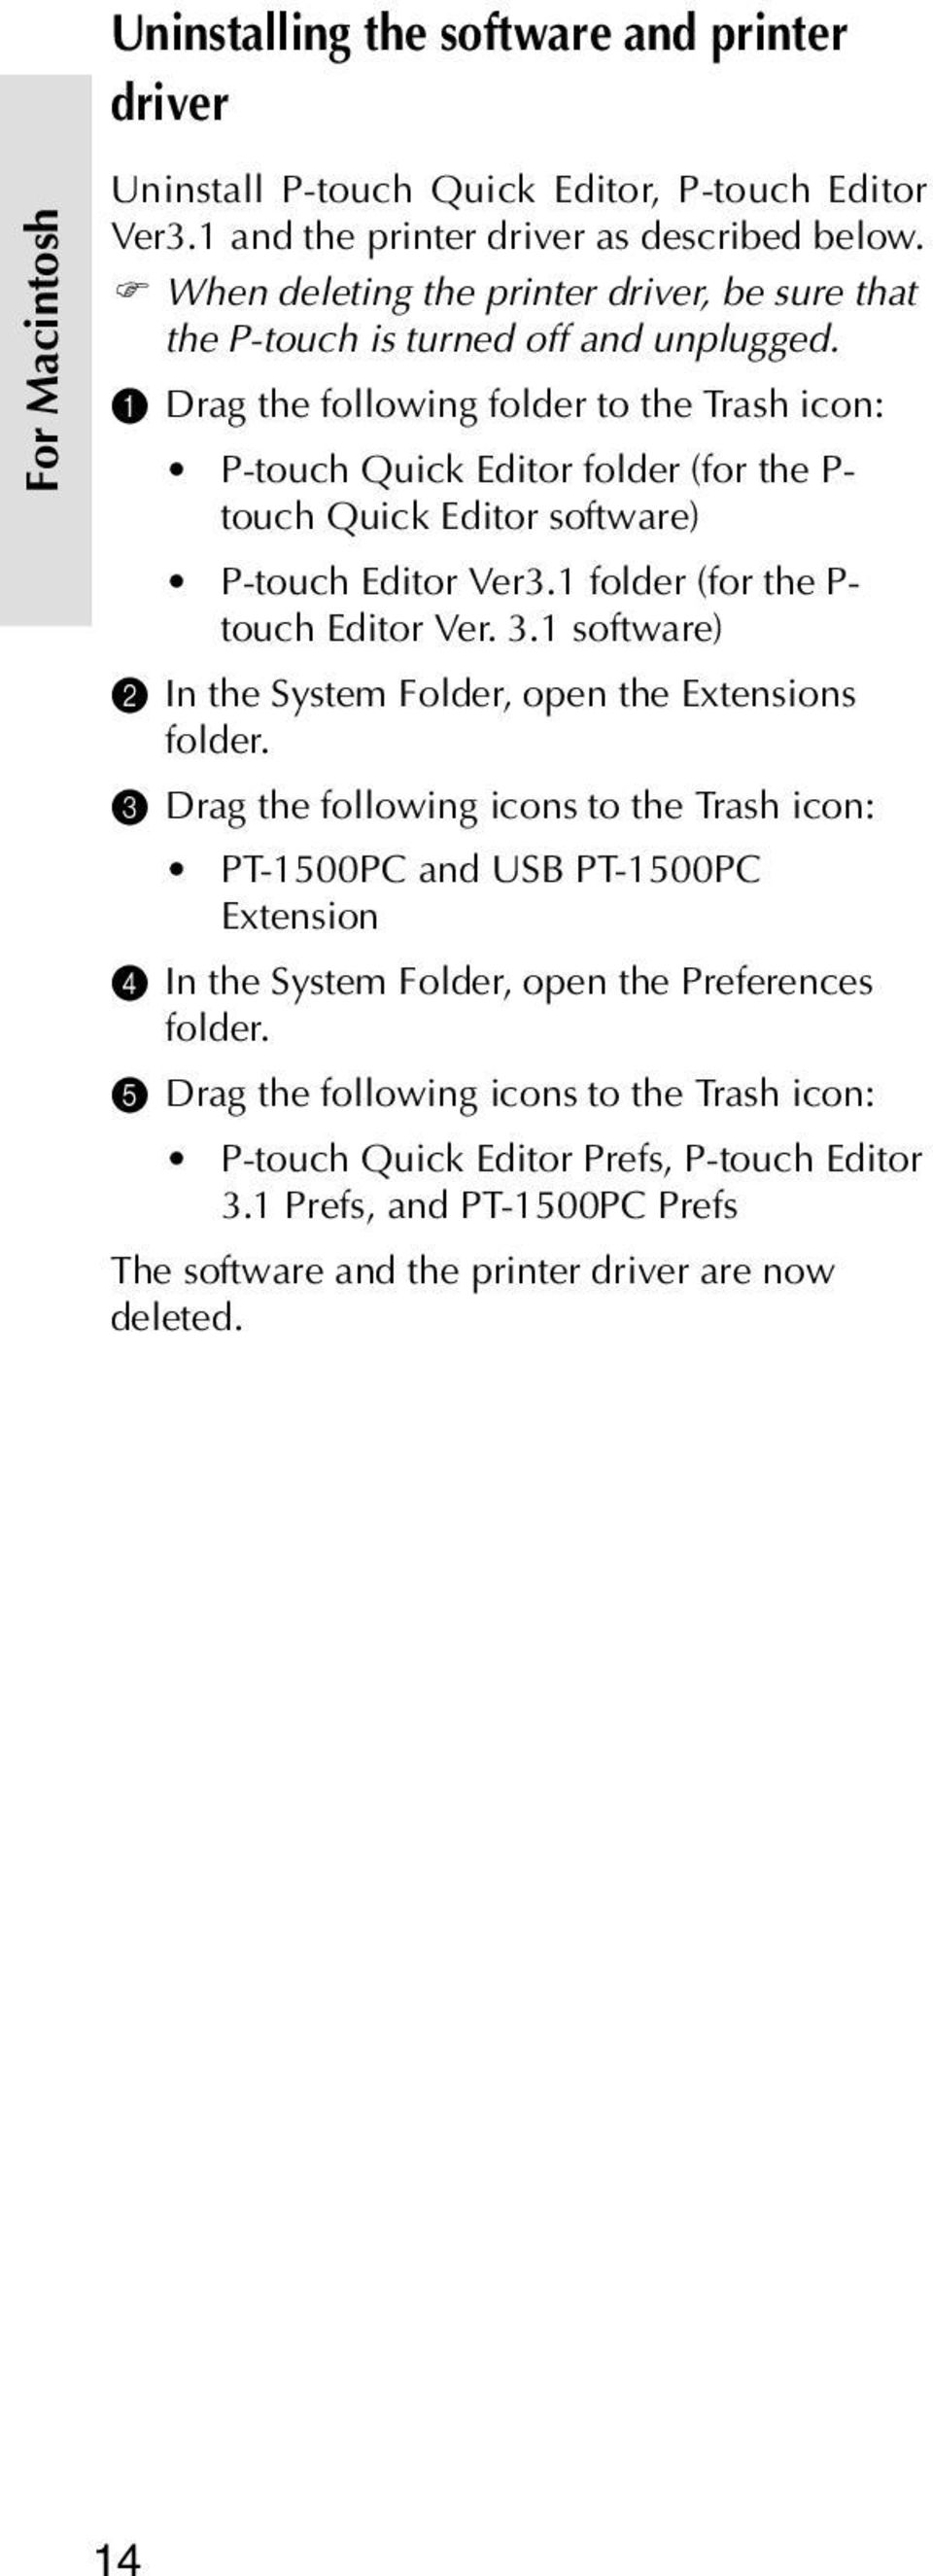 1 Drag the following folder to the Trash icon: P-touch Quick Editor folder (for the P- touch Quick Editor software) P-touch Editor Ver3.1 folder (for the P- touch Editor Ver. 3.